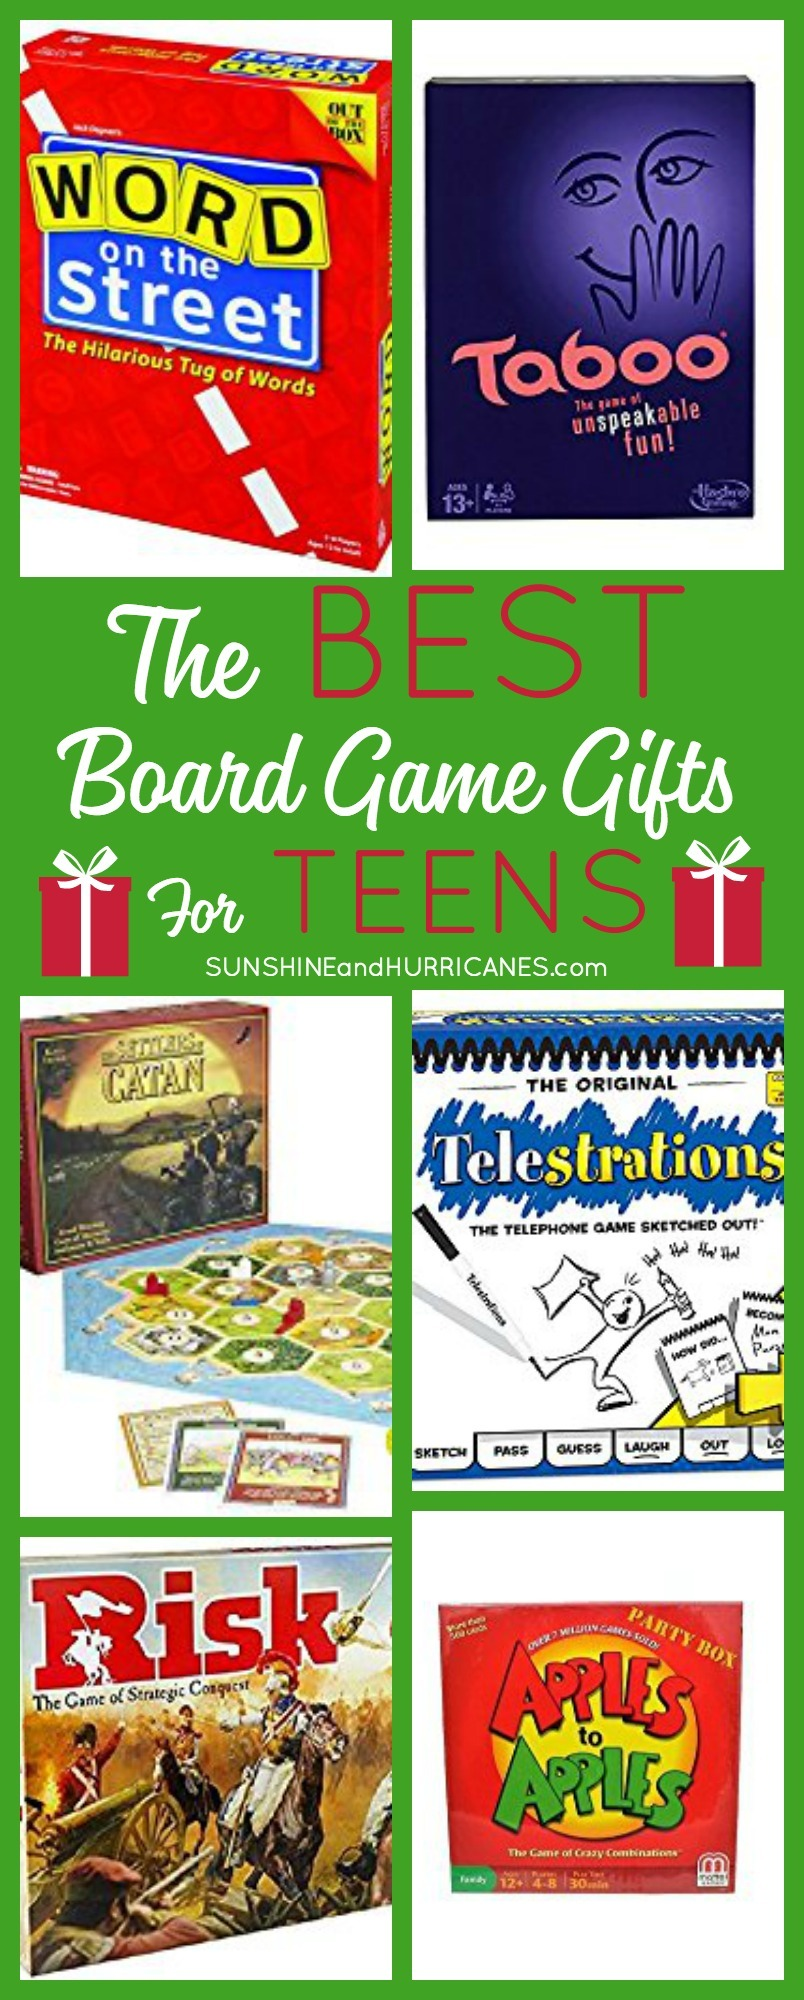 Looking for some great gift ideas for teens? These Board Games for Teens were suggested by teens and make fun, affordable gifts to holidays and birthdays